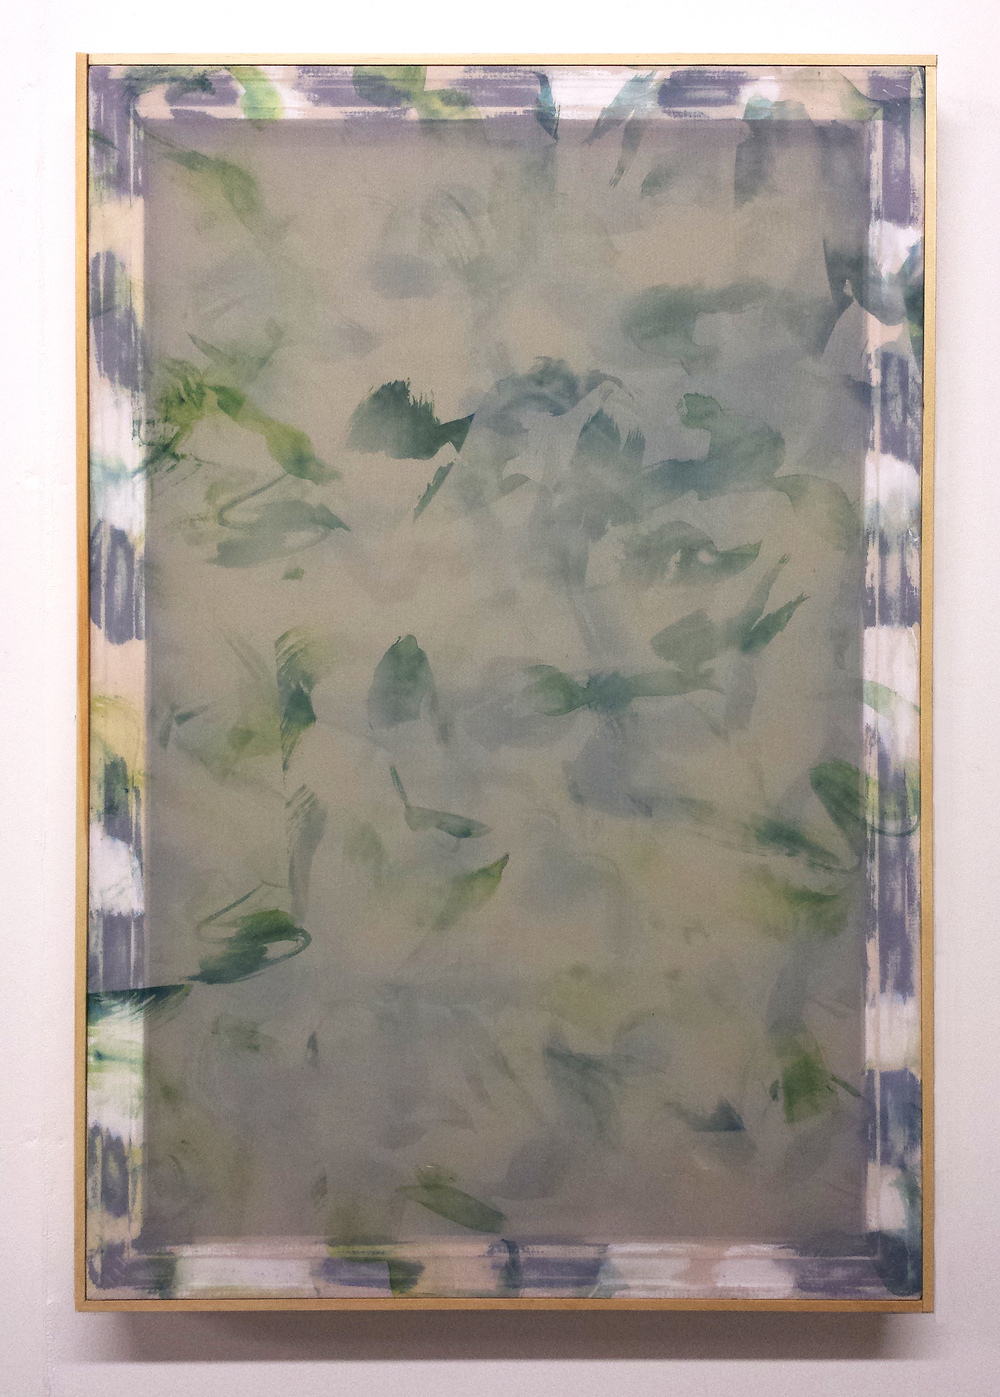 SARAH SANDS PHILLIPS Veiling, Veiling, 2014. Fabric dye on two layers of polyester fabric, acrylic paint, artist frame, 36 x 24 x 1.5 inches.